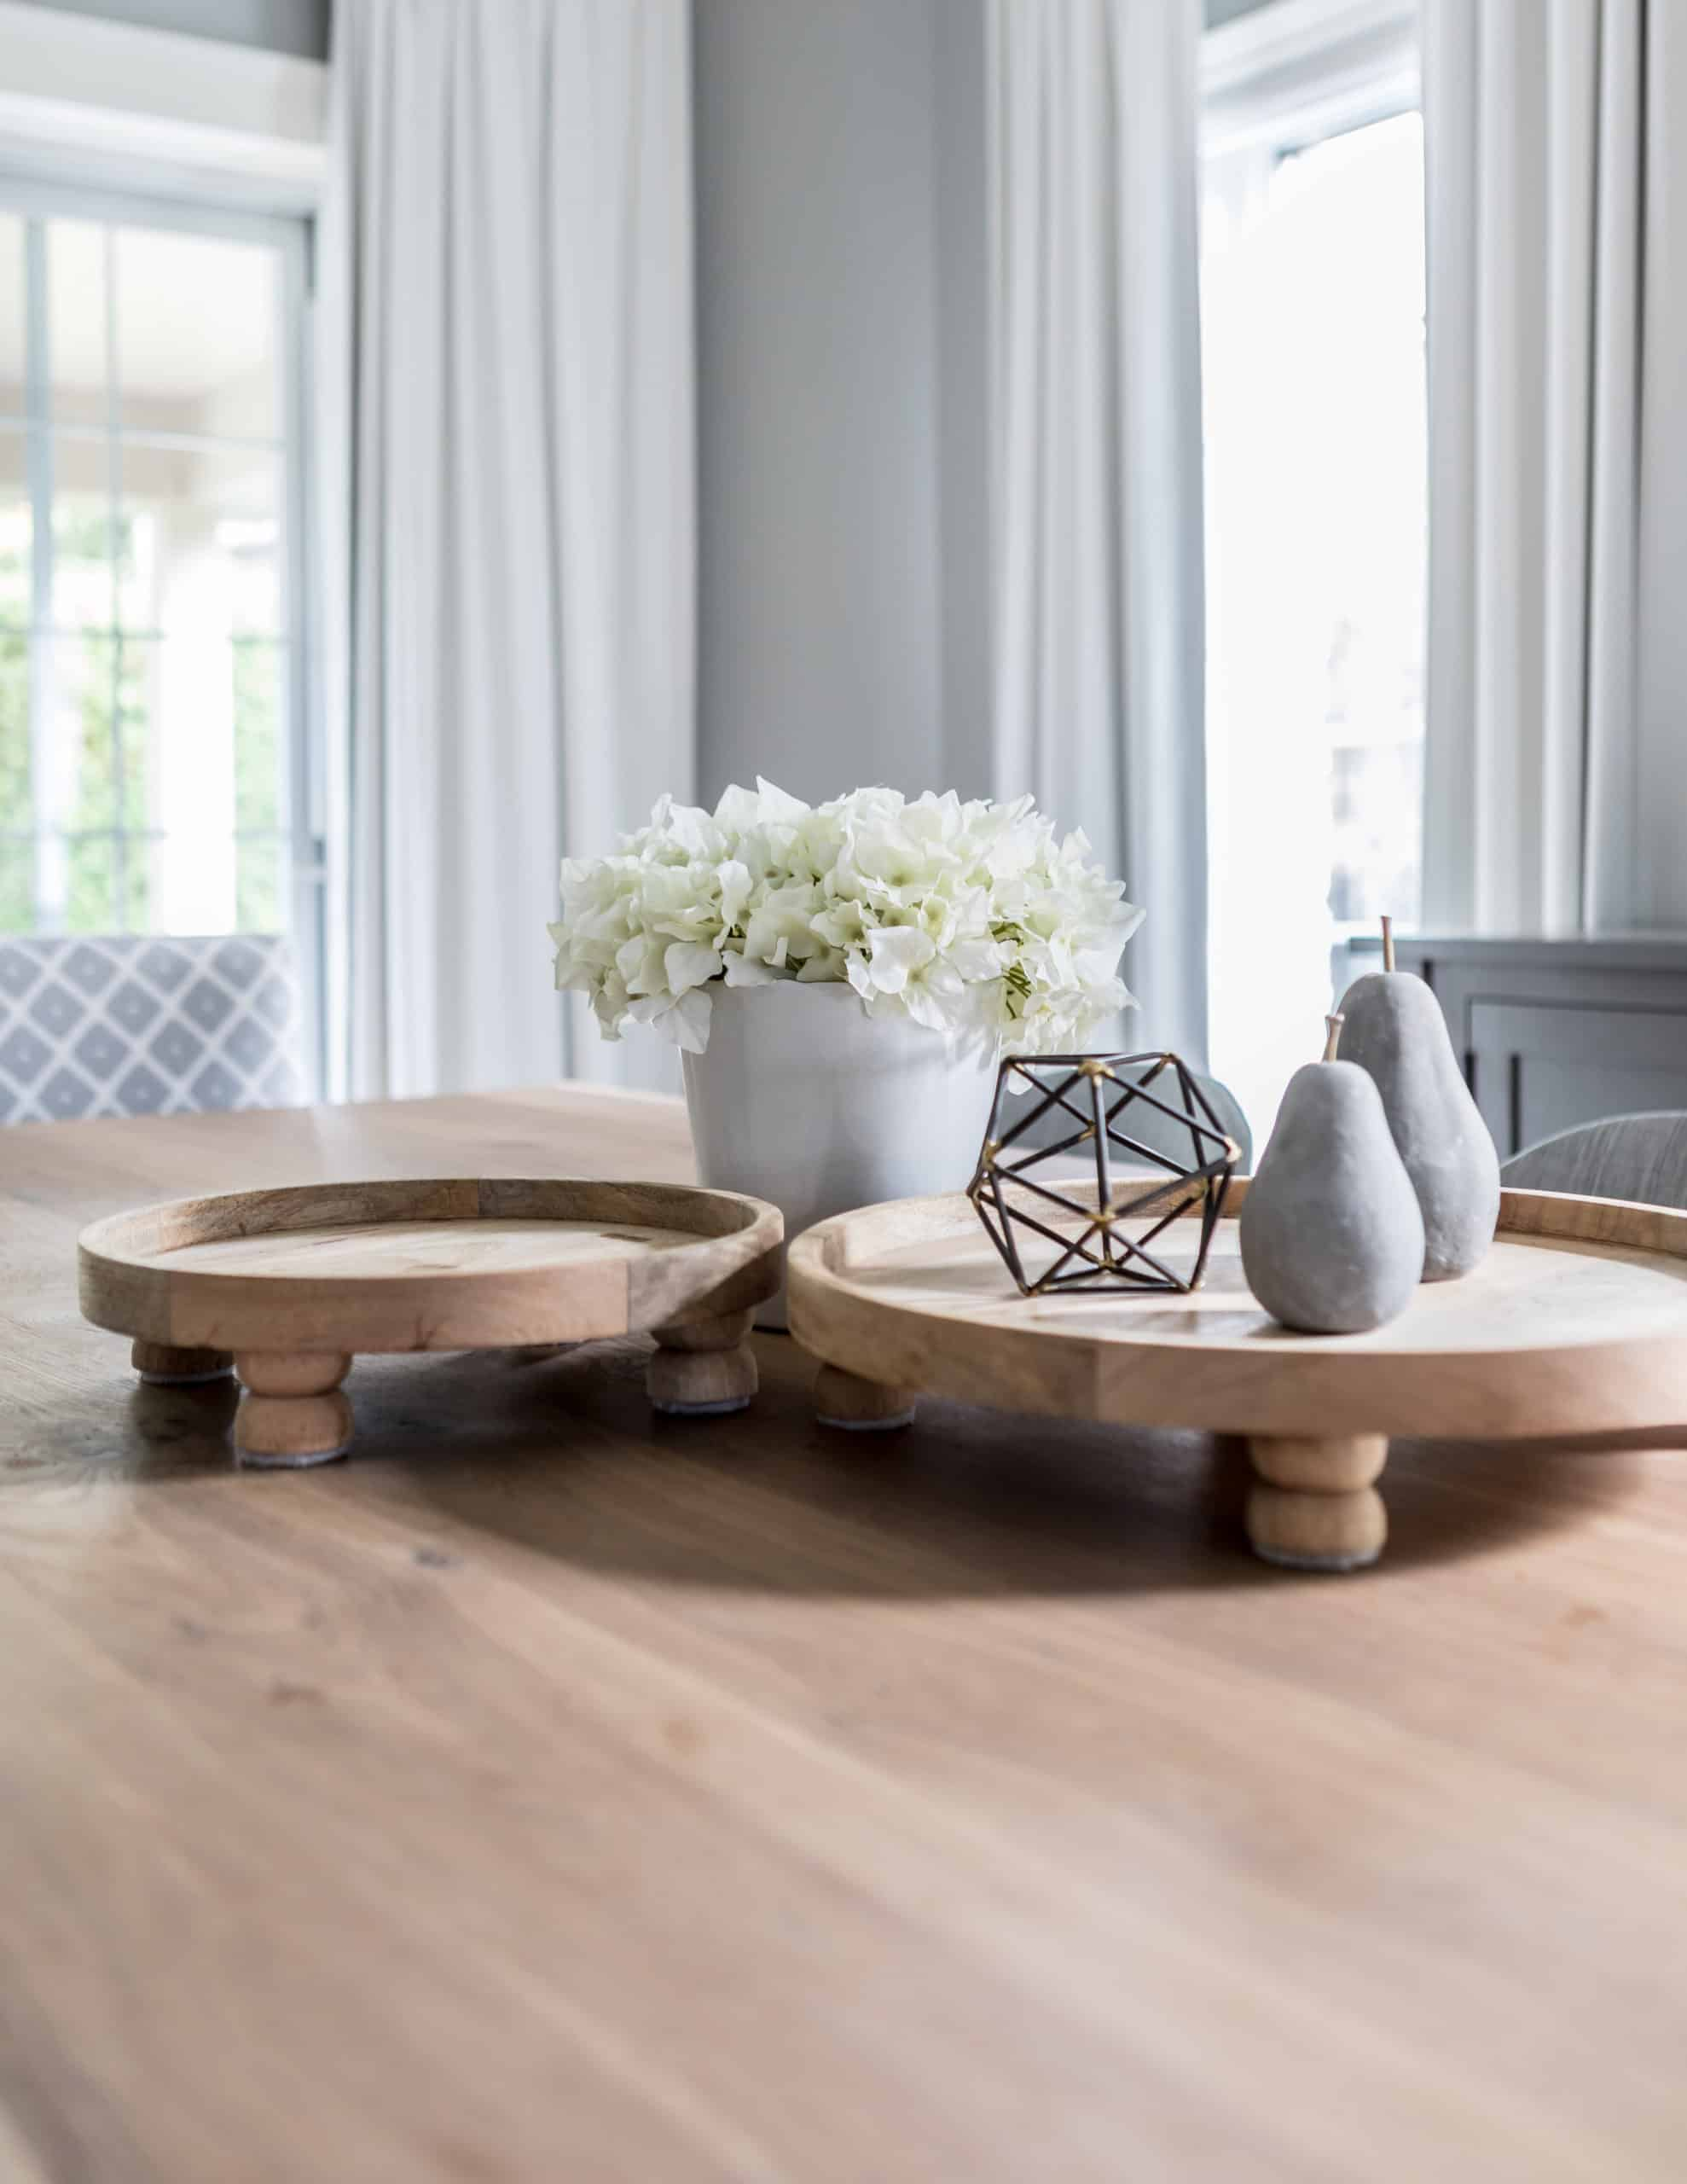 Decorations on a wooden coffee table